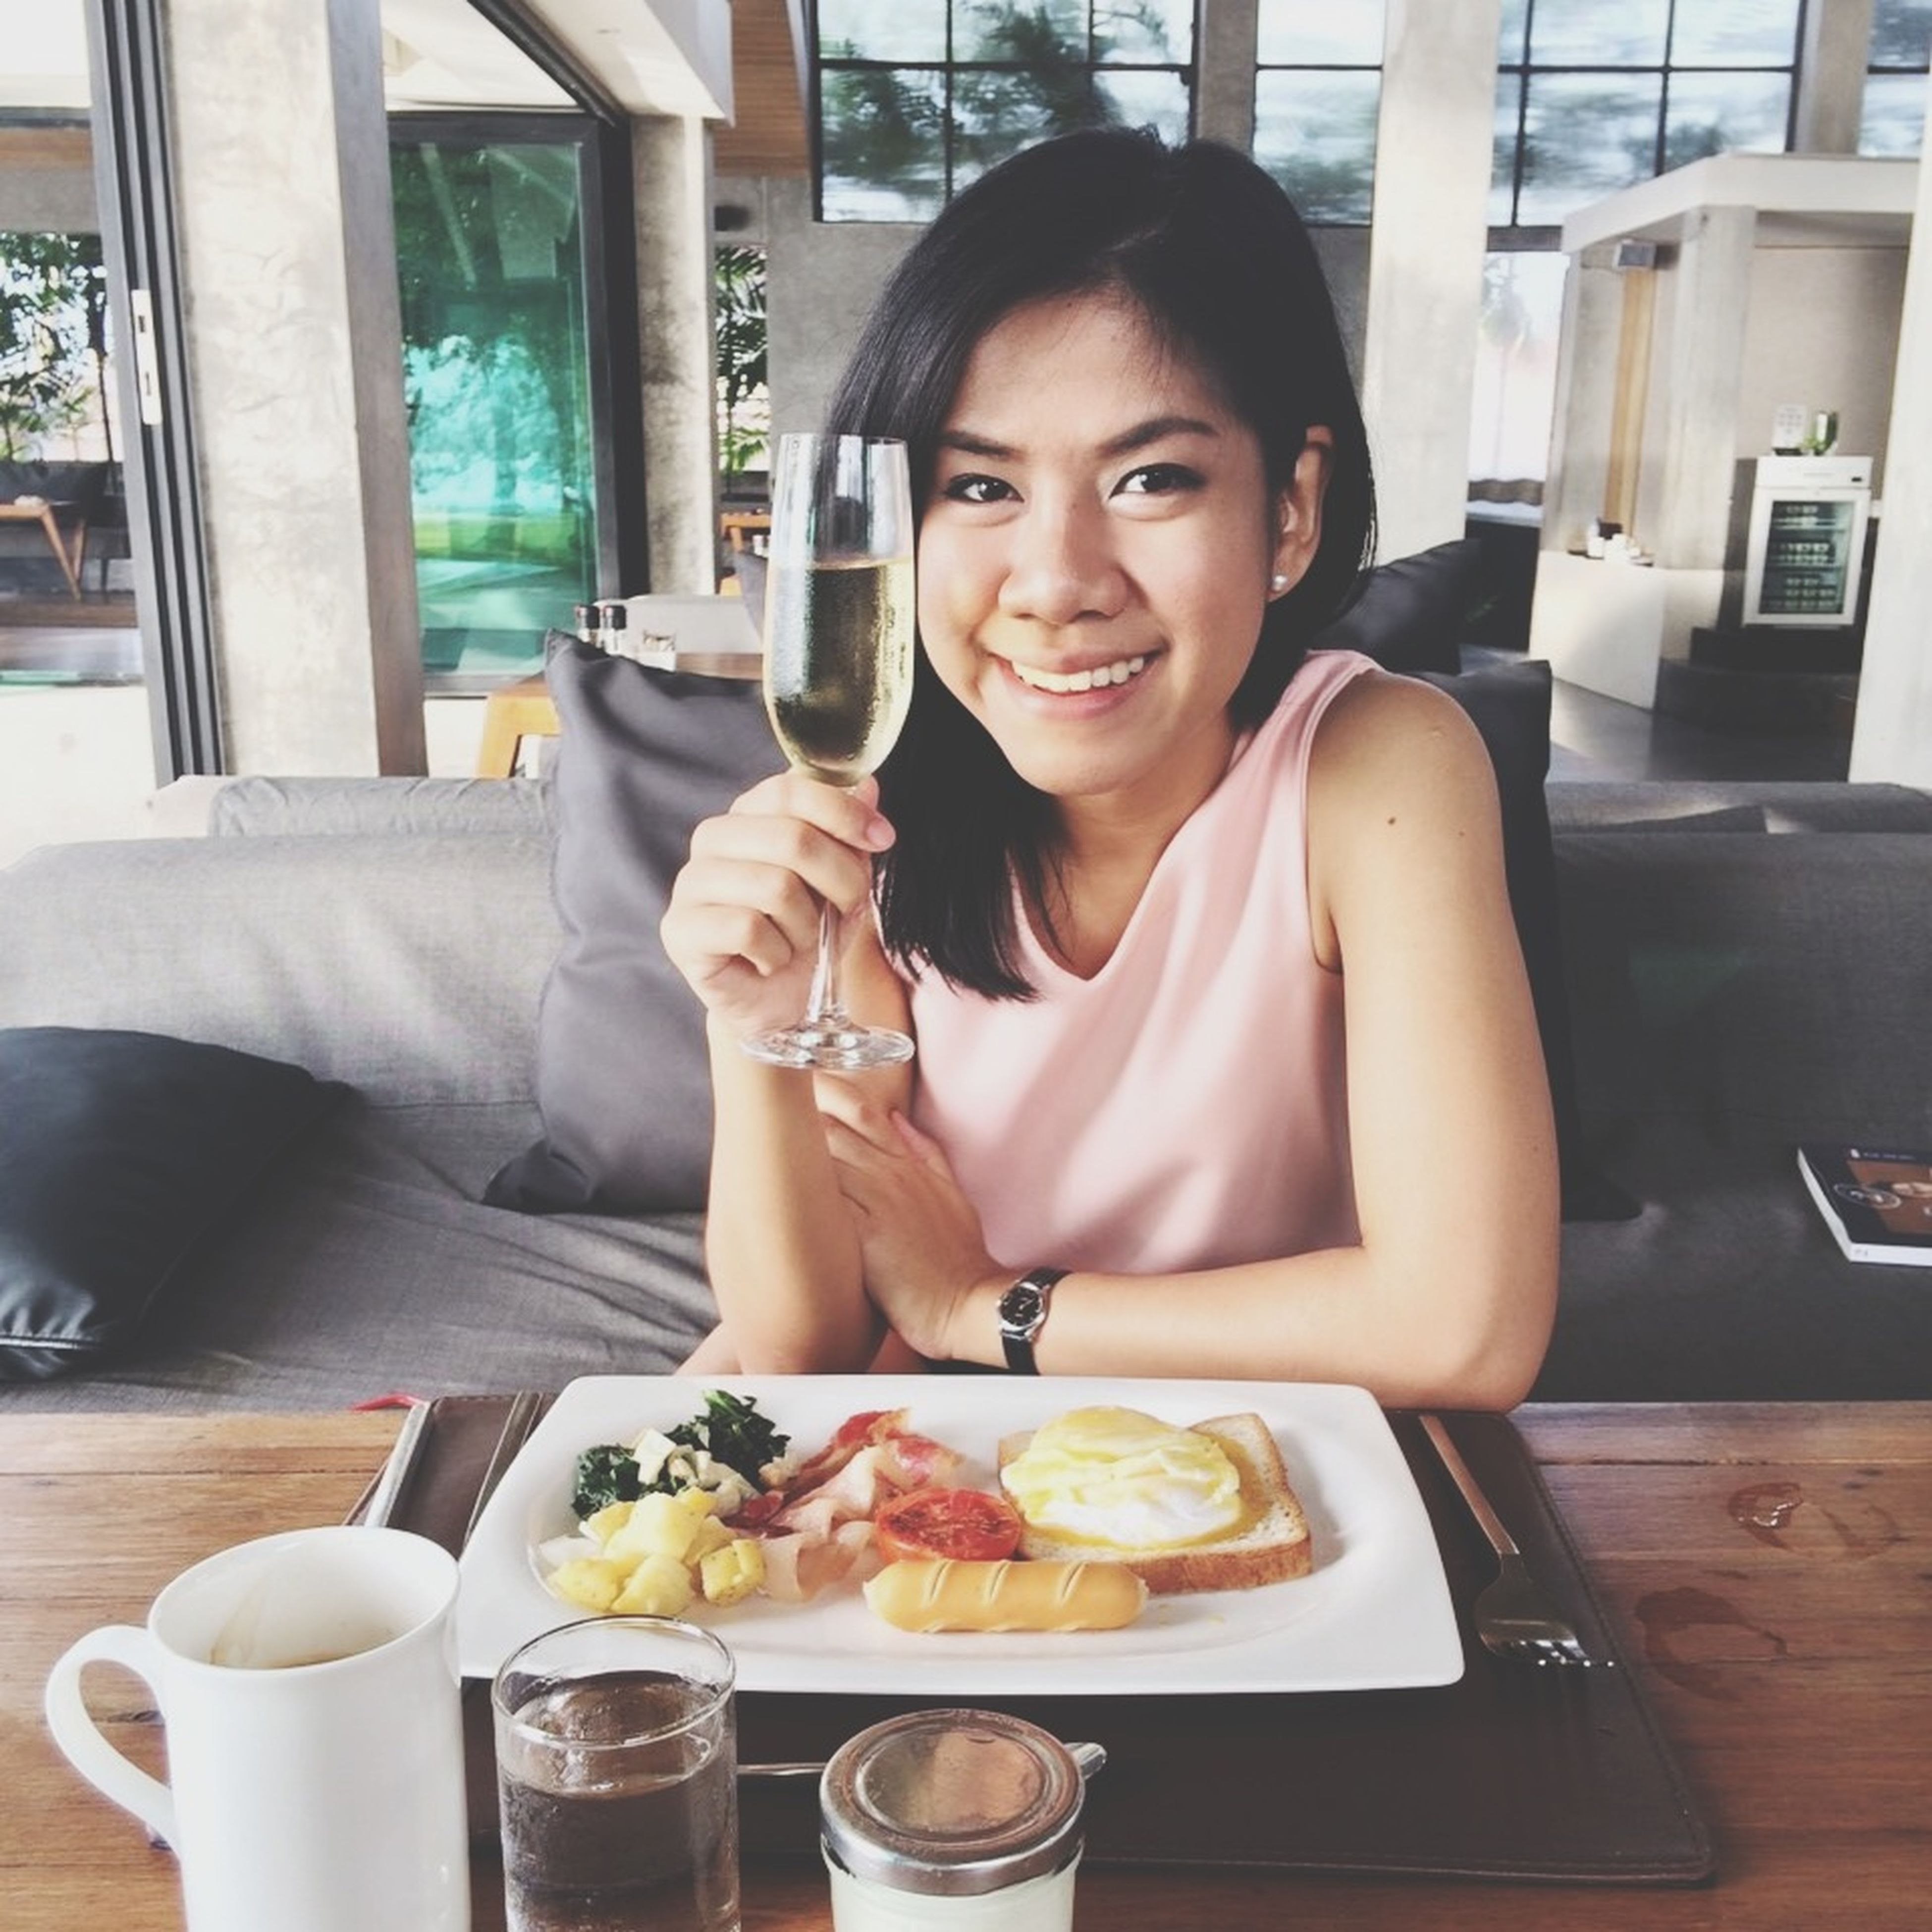 food and drink, indoors, sitting, lifestyles, food, person, young adult, drink, table, freshness, leisure activity, casual clothing, young women, restaurant, waist up, holding, front view, portrait